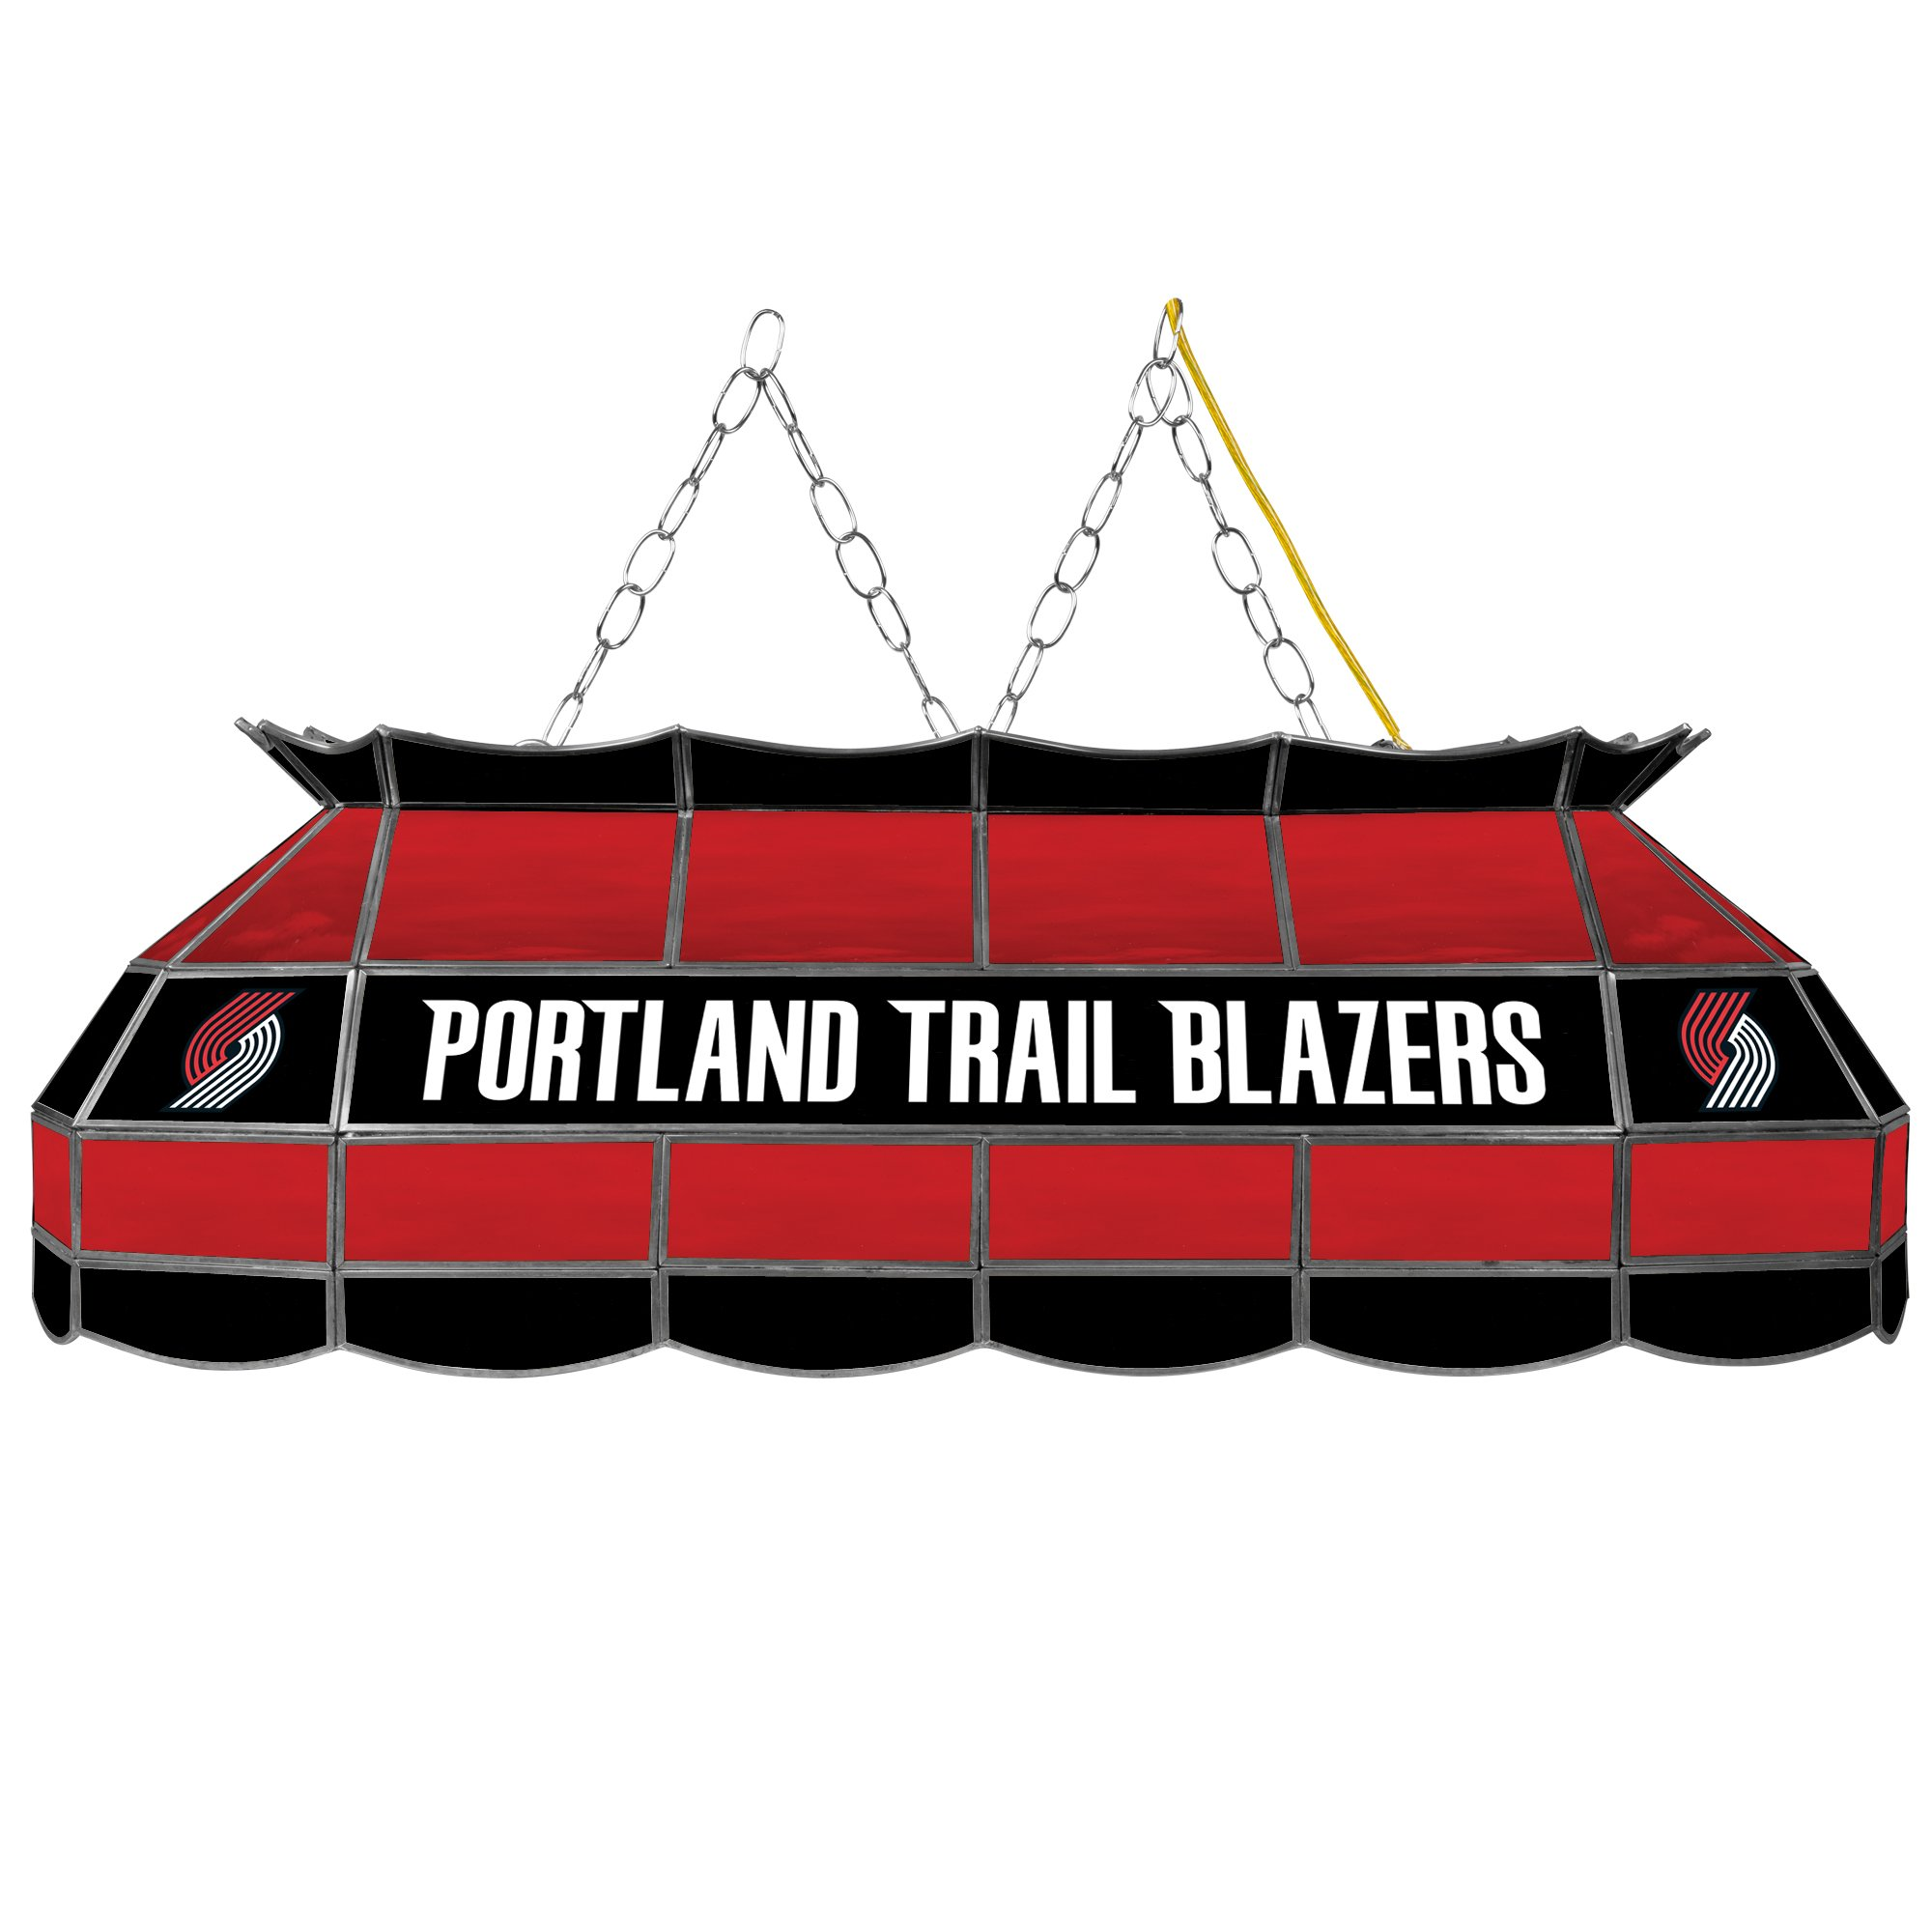 NBA Portland Trailblazers Tiffany Gameroom Lamp, 40'' by Trademark Gameroom